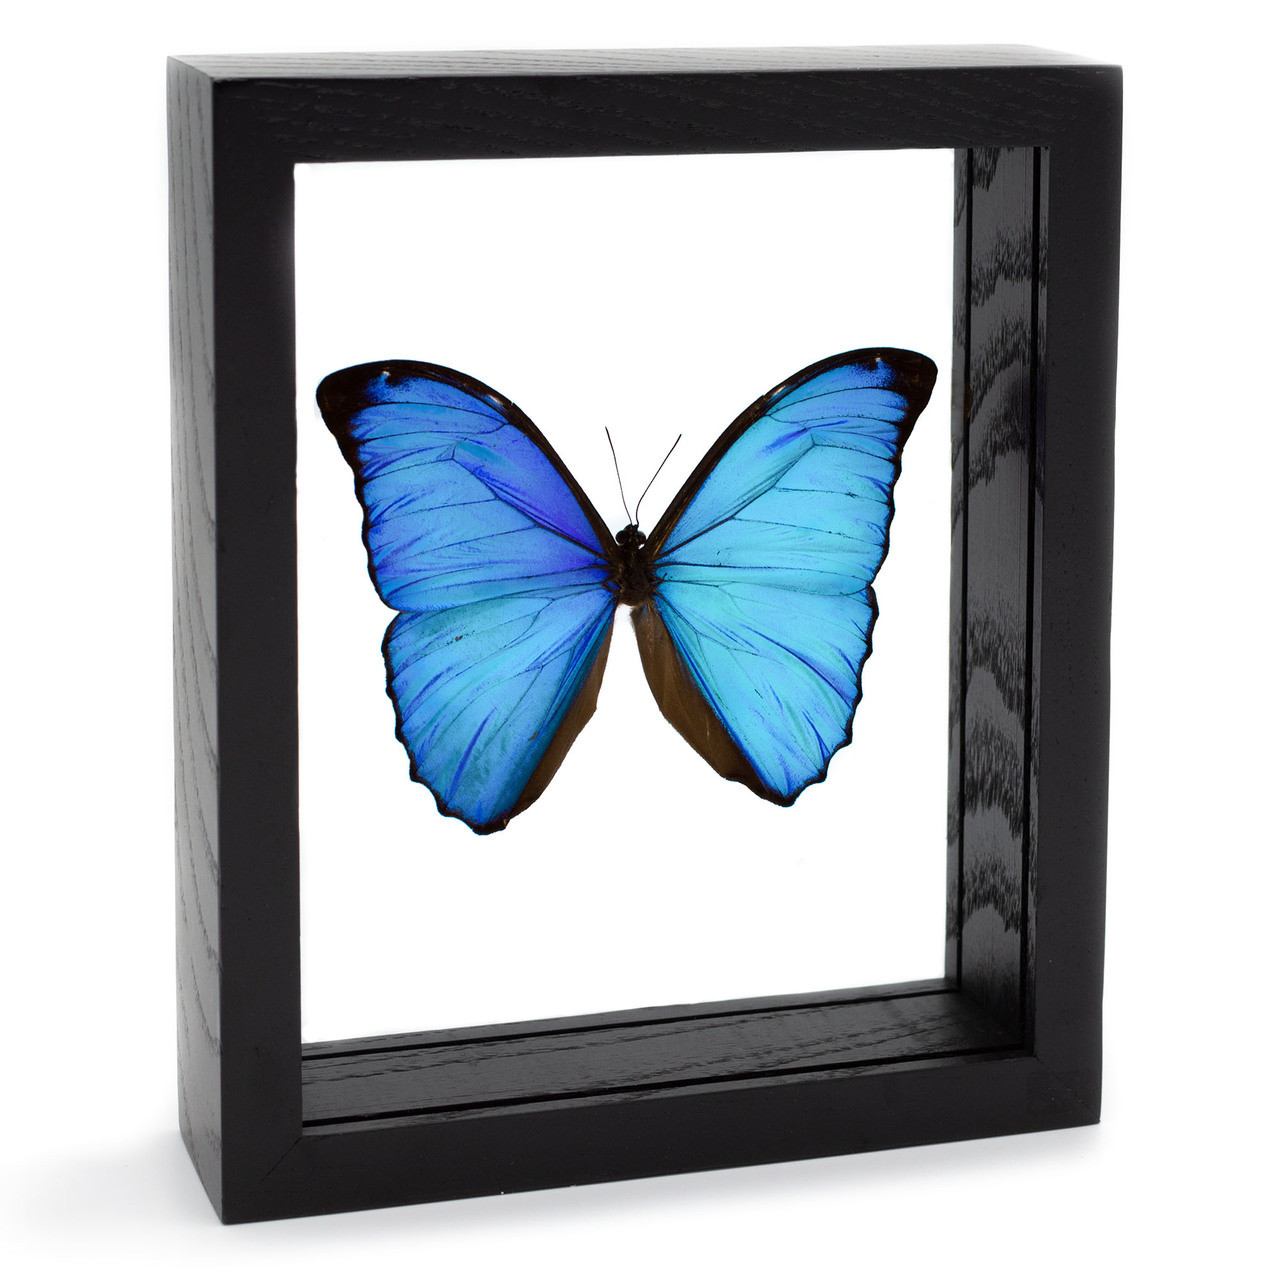 Insects & Butterflies REAL BIG DIDIUS BLUE MORPHO BUTTERFLY TAXIDERMY FRAMED INSECT HOME DECORATION